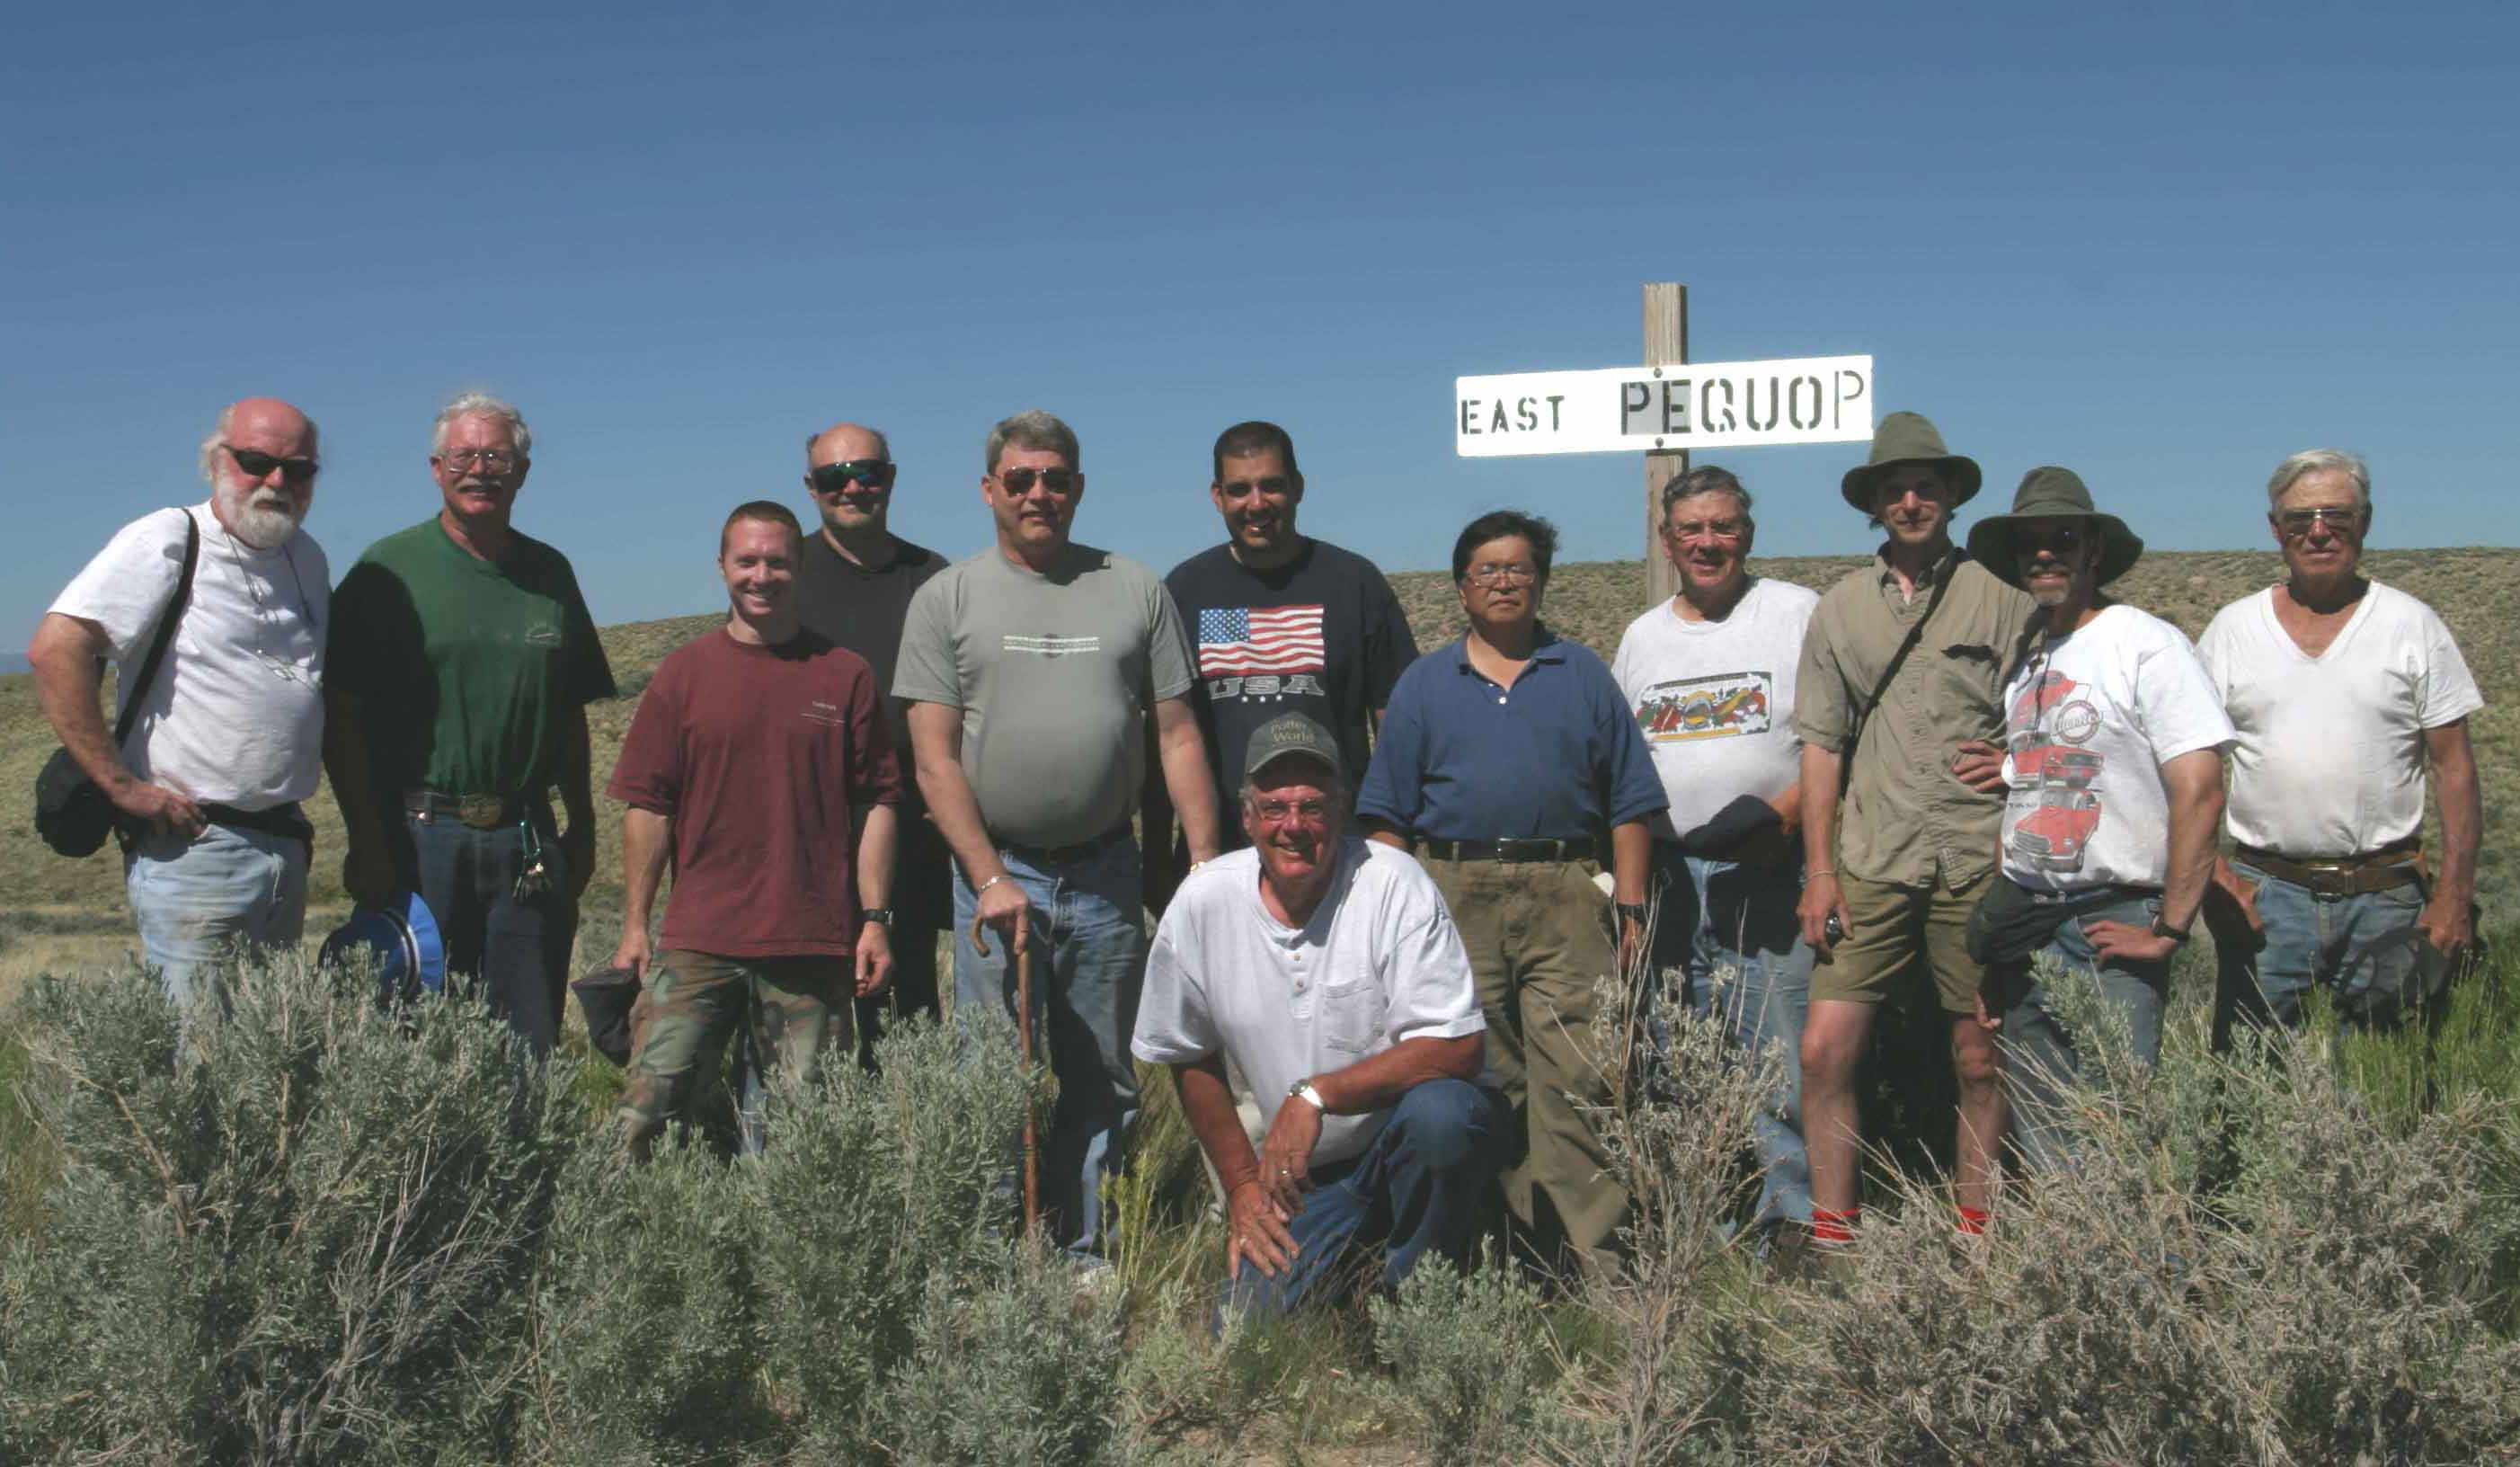 Twelve guys in the Nevada desert, June, 2006.